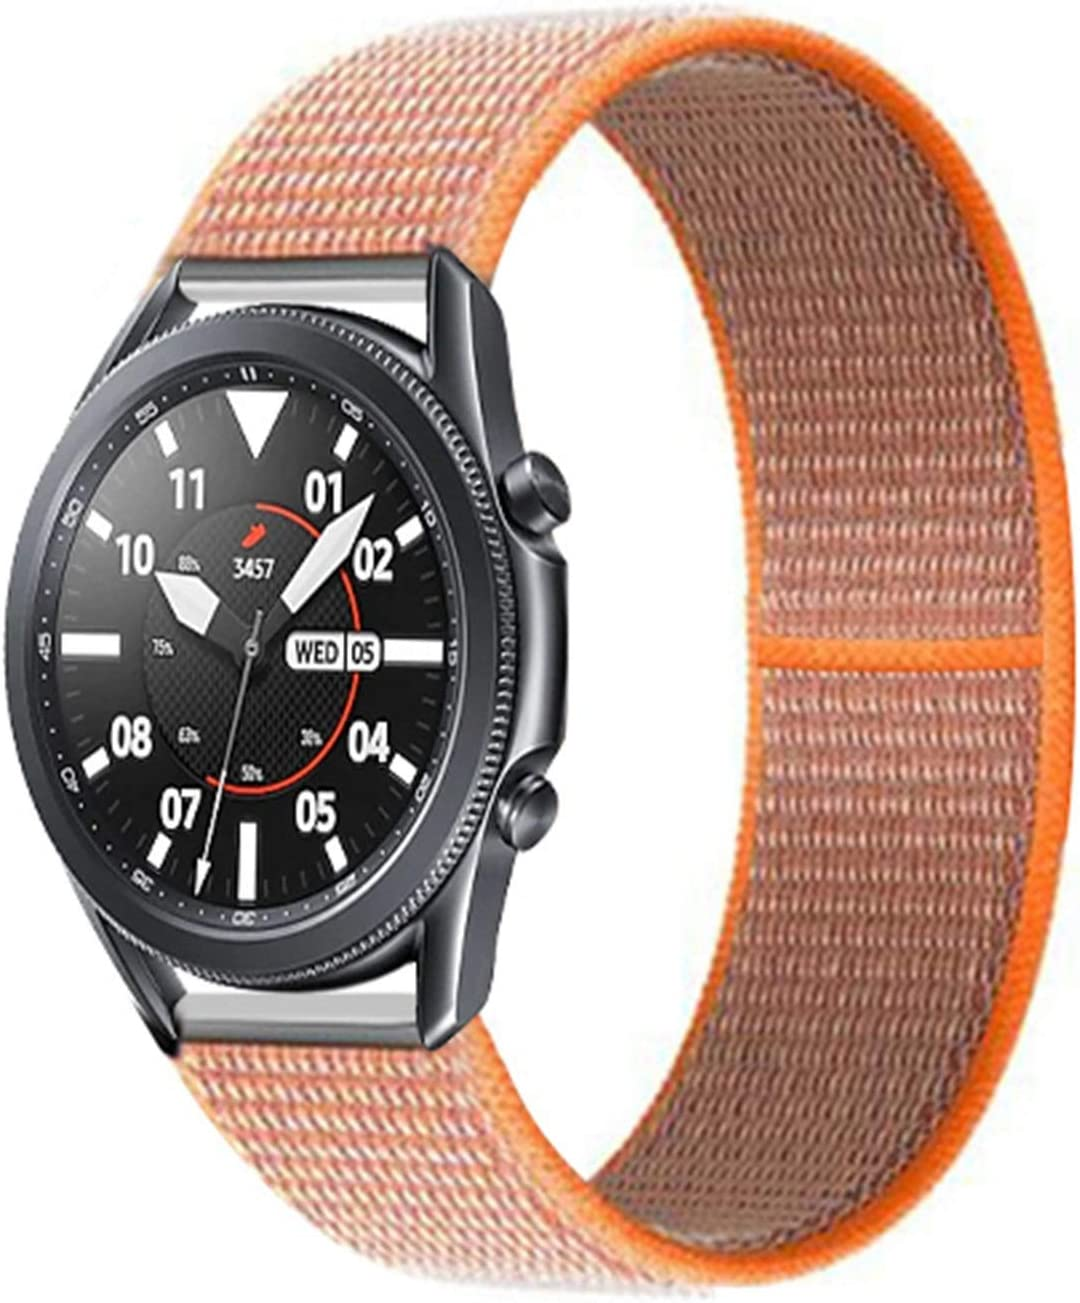 price ZWMFAC 20 22mm Watch Band for S3 Watc Galaxy Popular Strap Gear Frontier